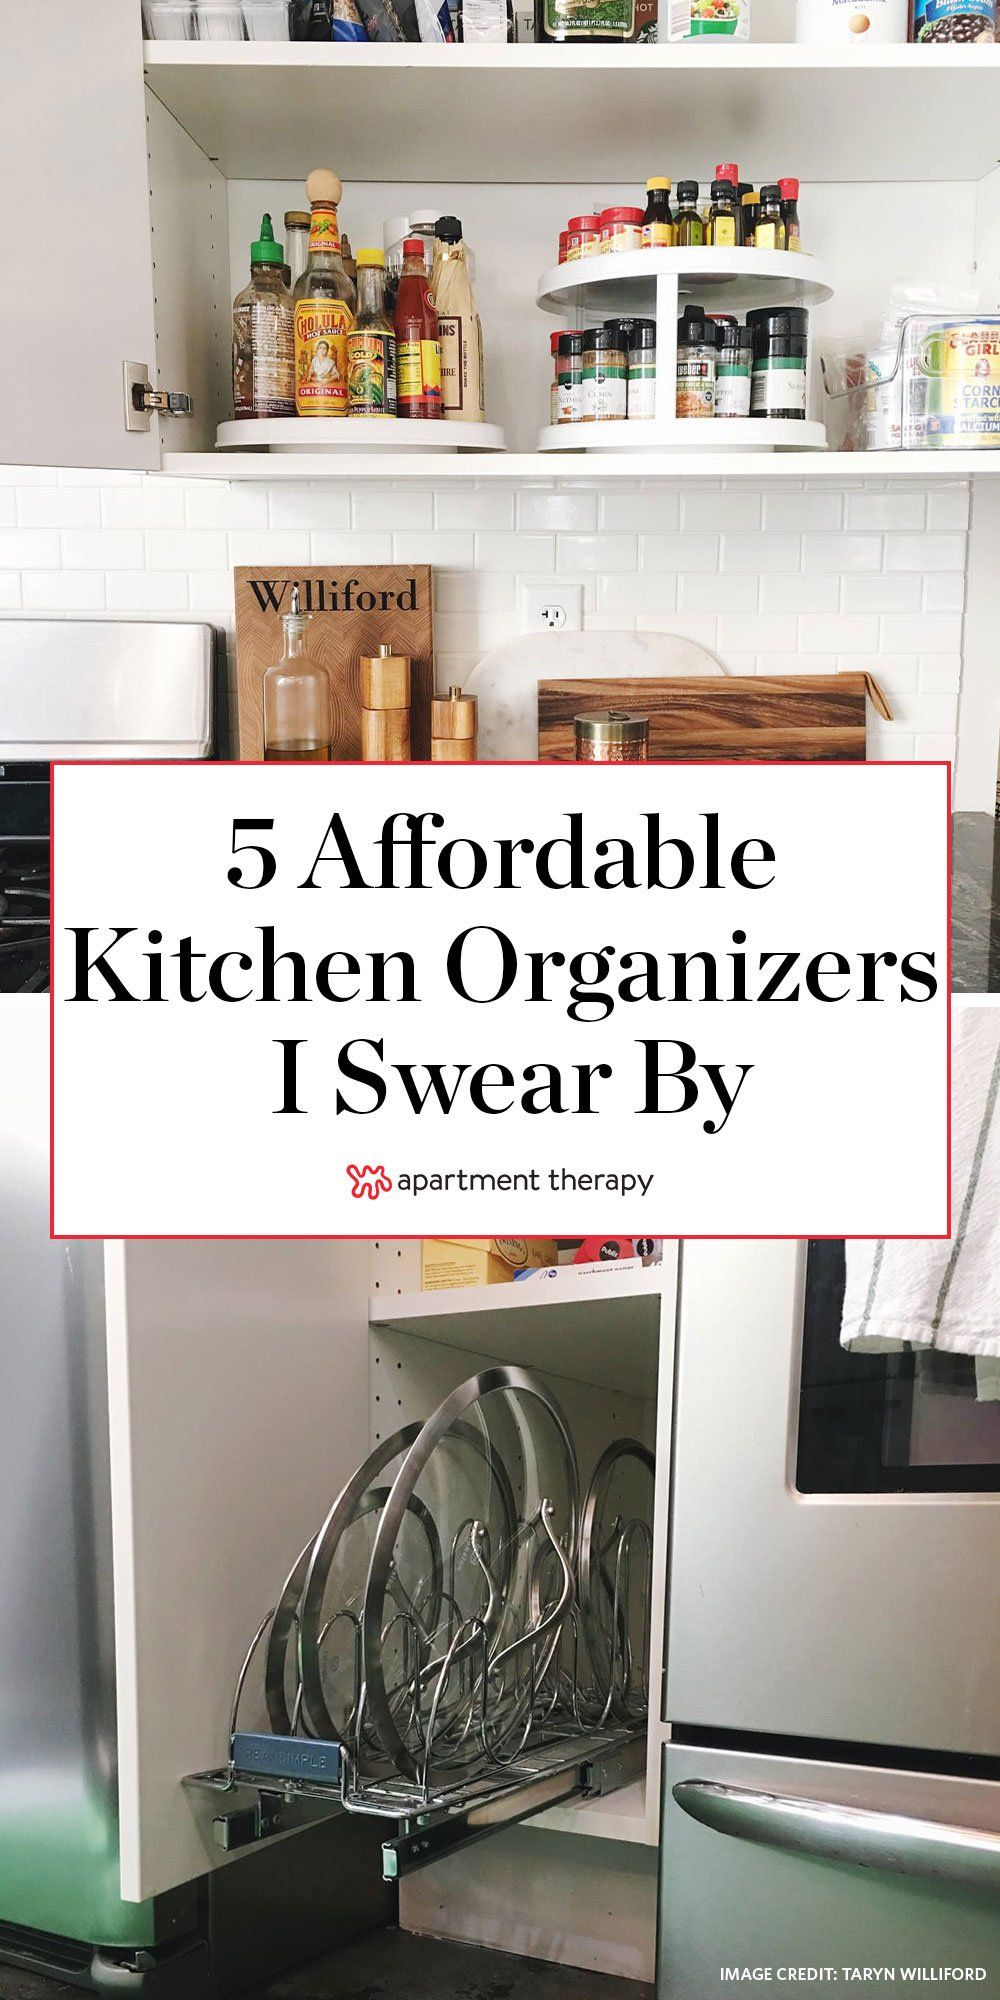 These are the 5 affordable kitchen organizers our Lifestyle Director swears by to maximize her cabinet storage. #storageideas #storagesolutions #kitchenideas #kitchencabinets #kitchenstorage #kitchenorganization #organizingideas #kitchenorganizers